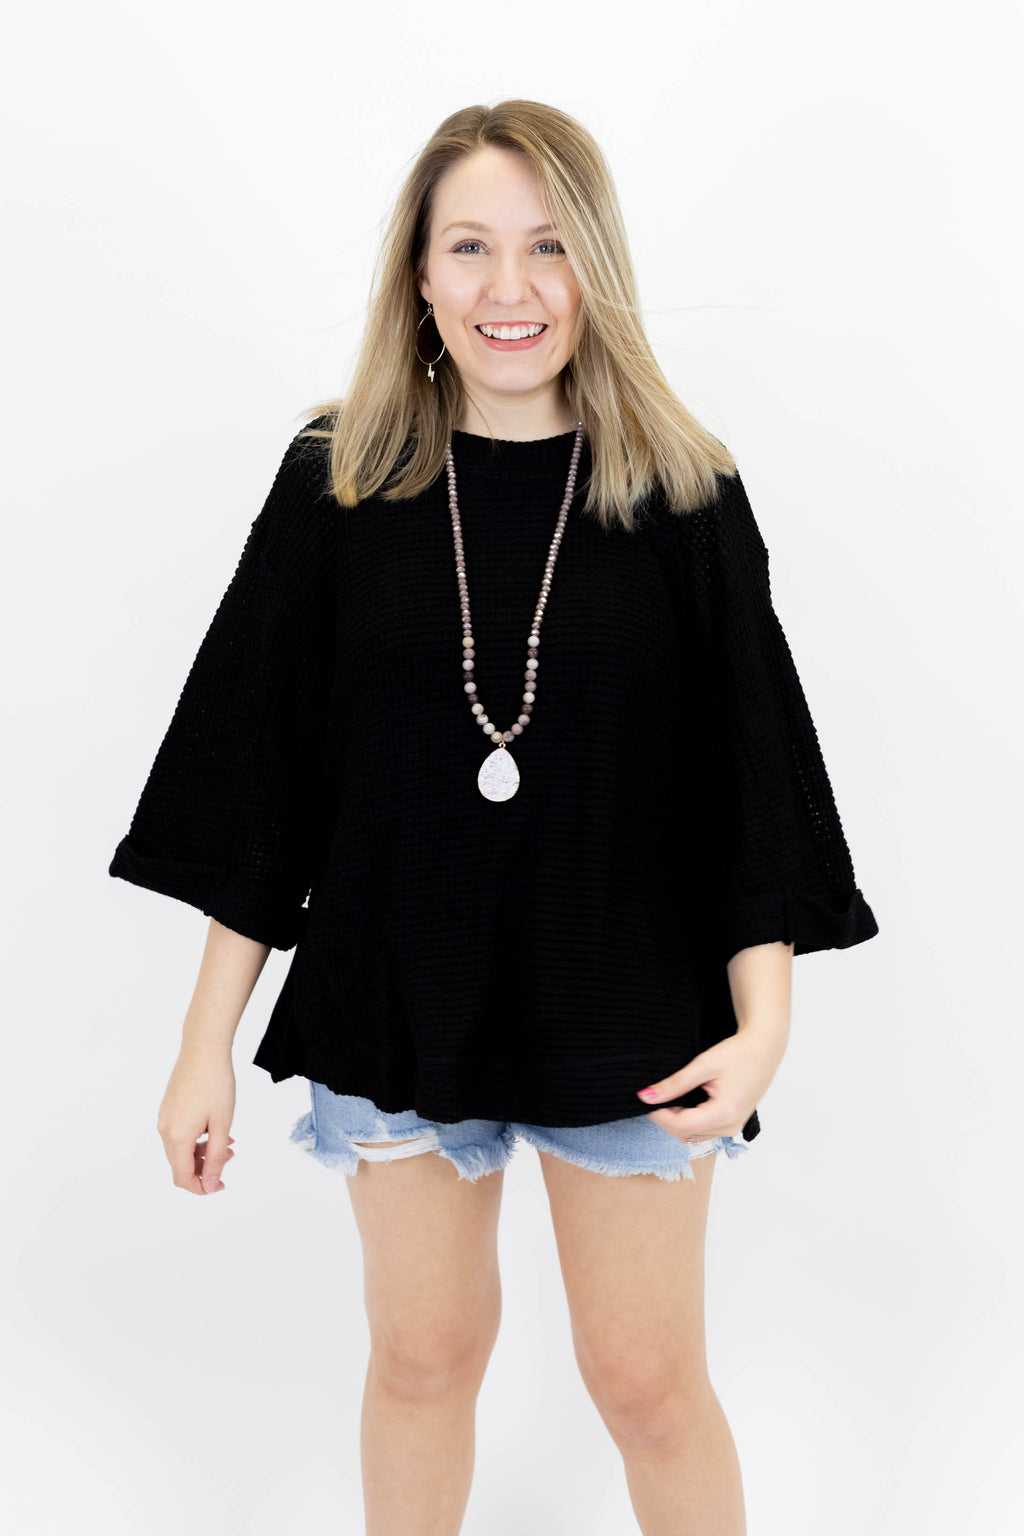 Black Waffle Knit 3/4 Length Sleeve Top with Scoop Neck